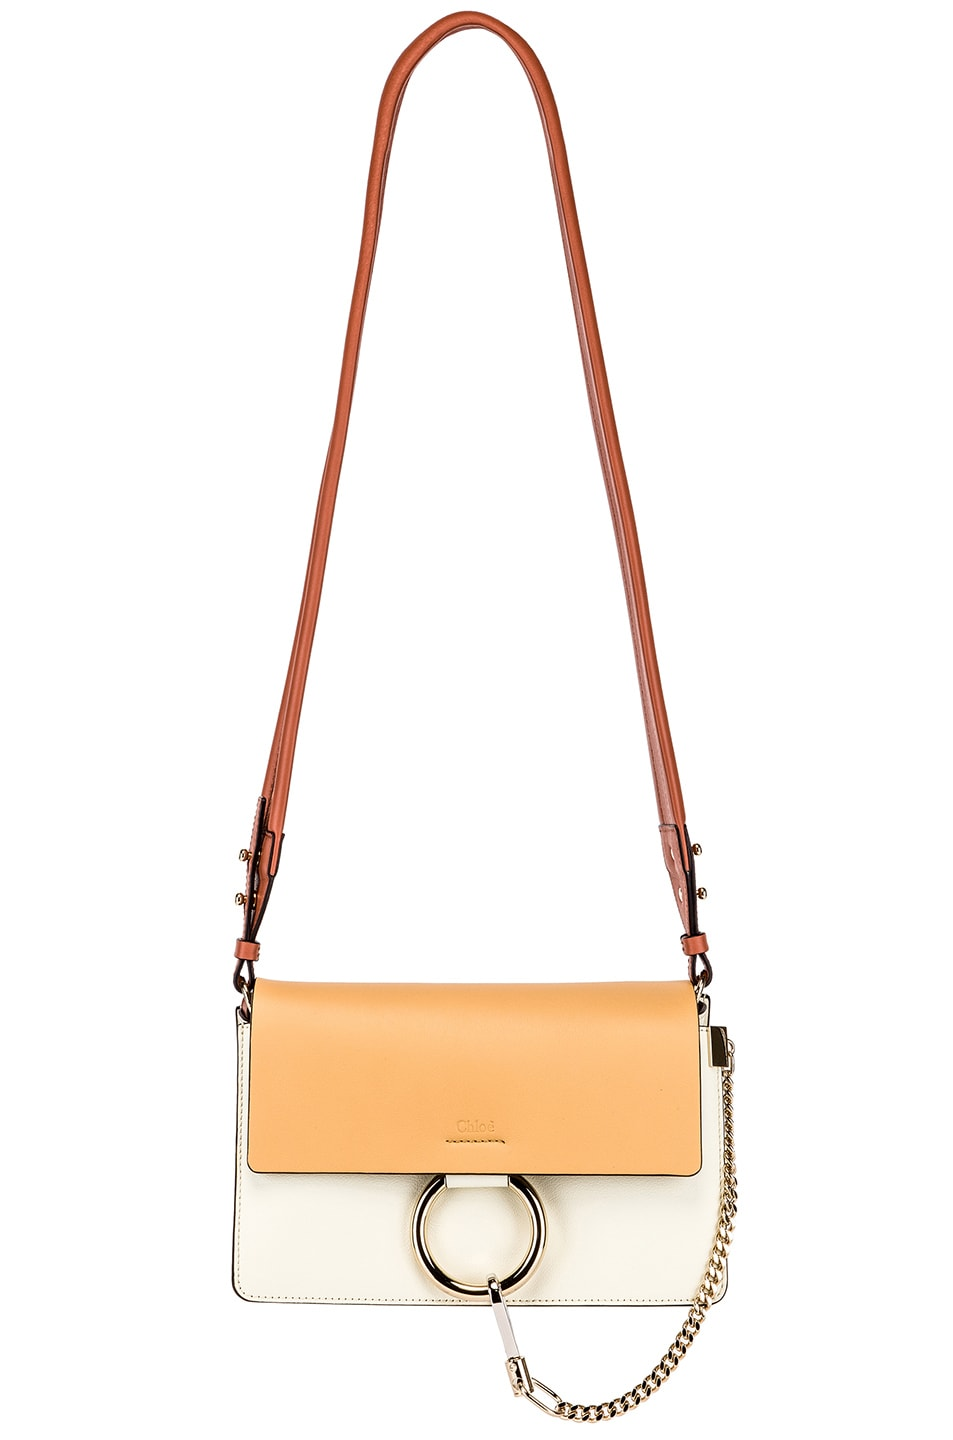 Image 6 of Chloe Small Faye Bag in Brown & White